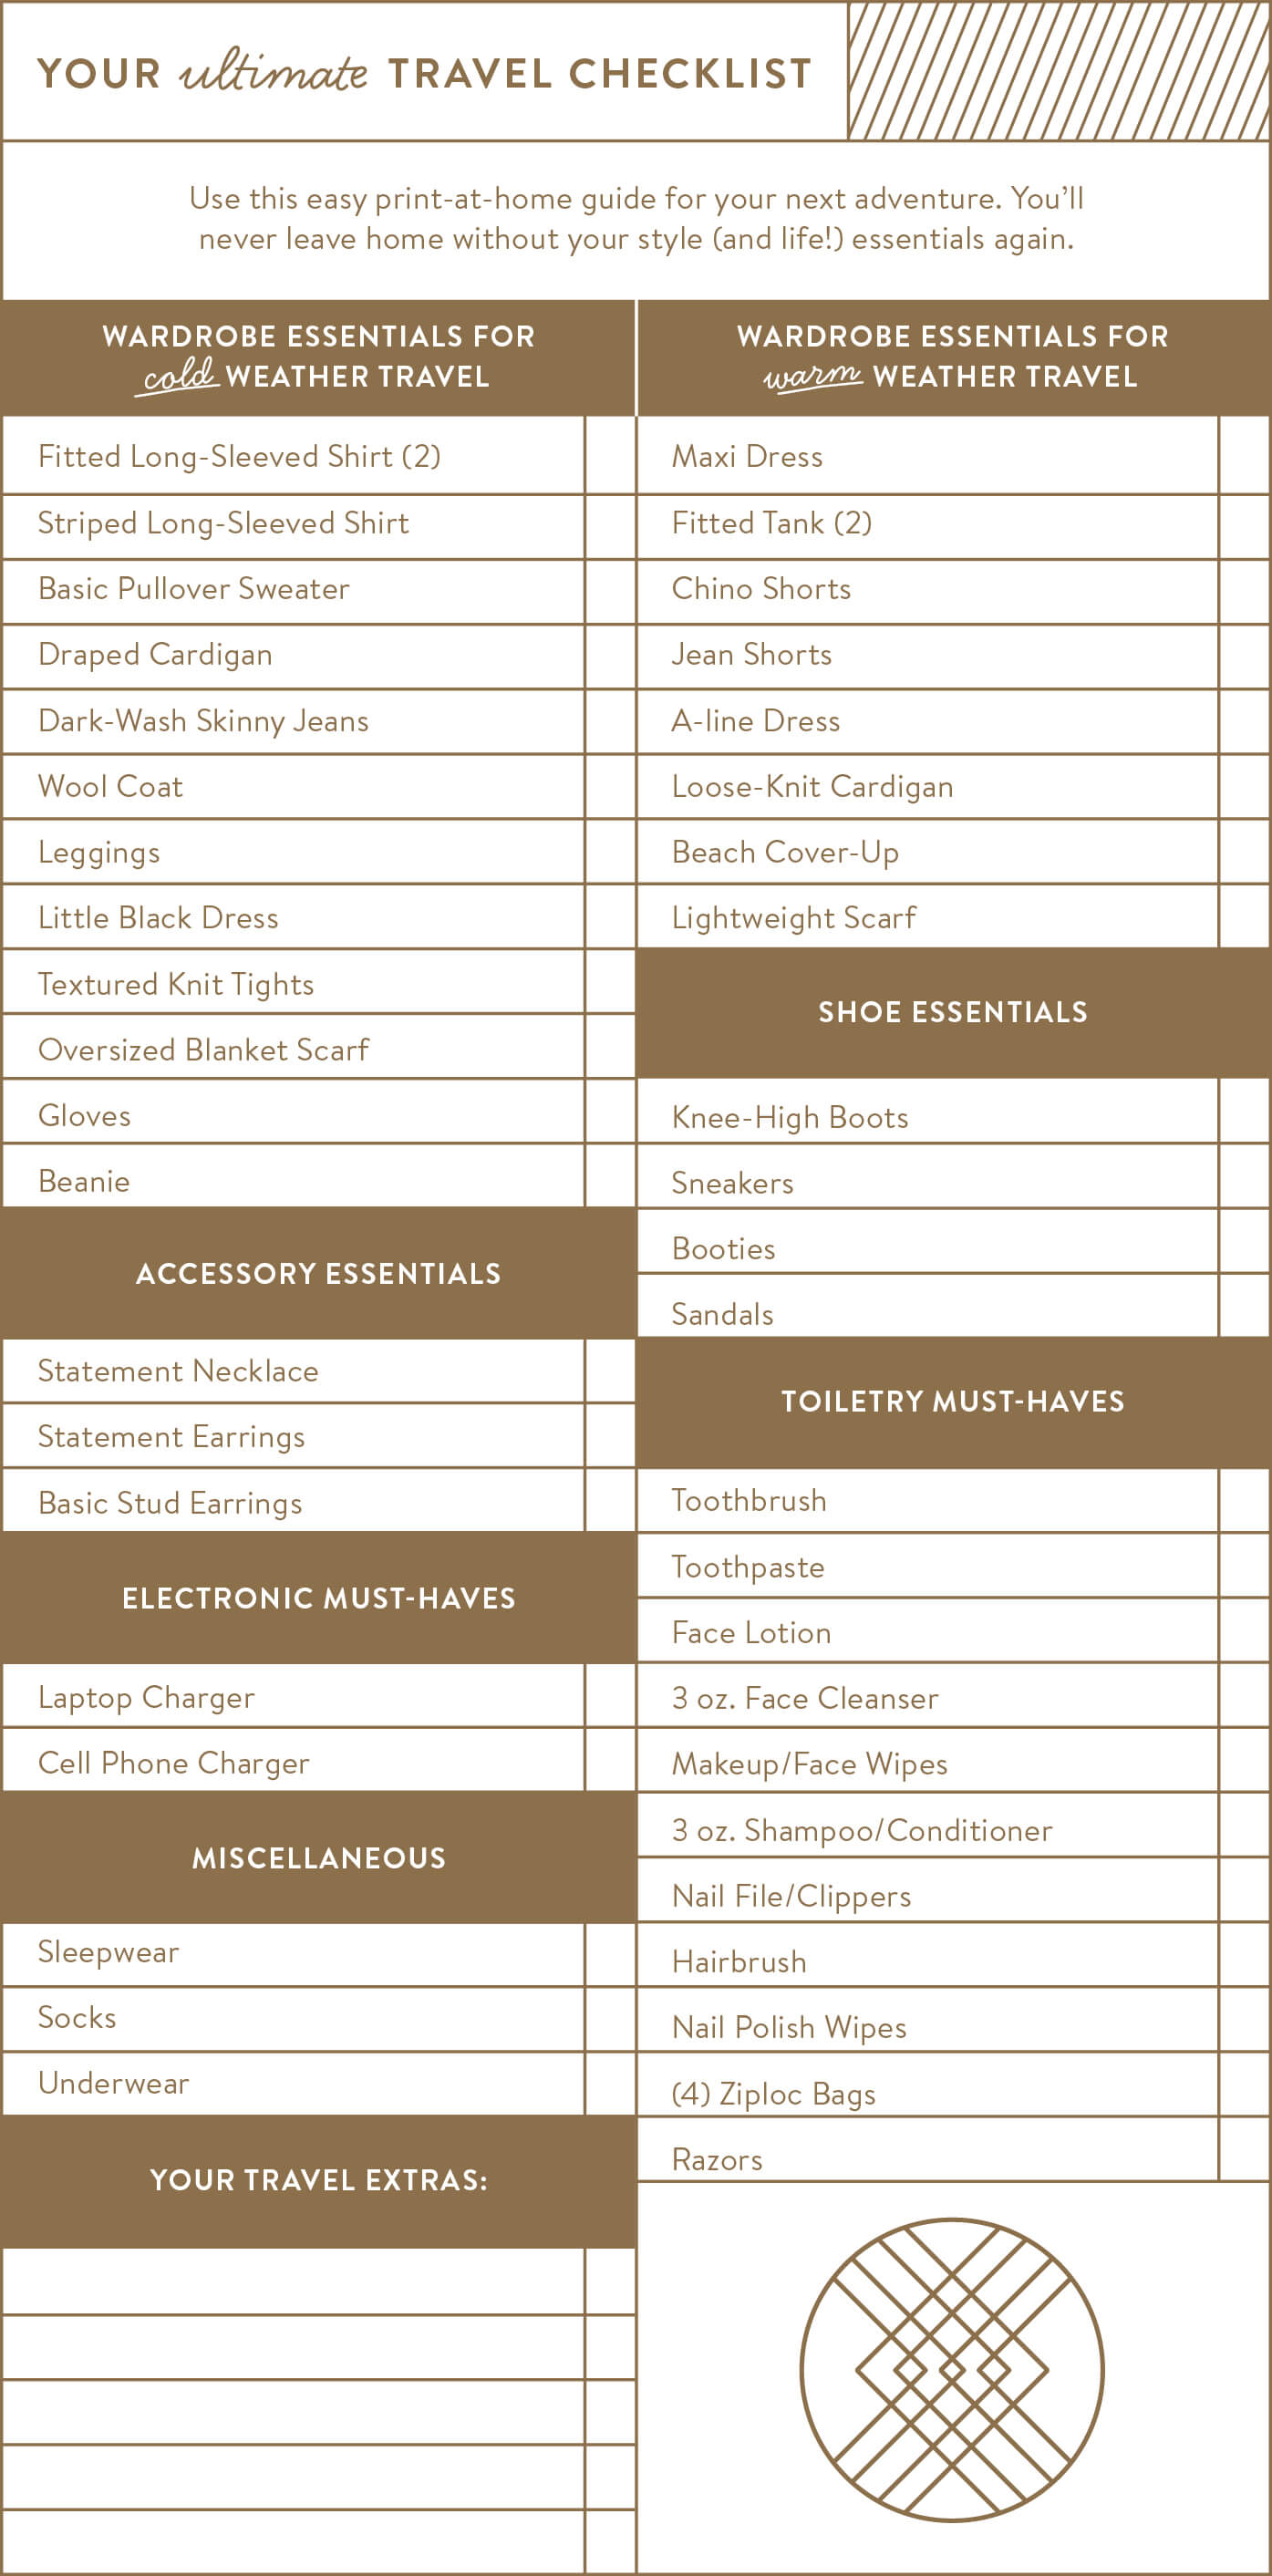 There's really nothing worse than forgetting (fill in any item here) when you travel. Never forget another style or life essential with your ultimate travel checklist!